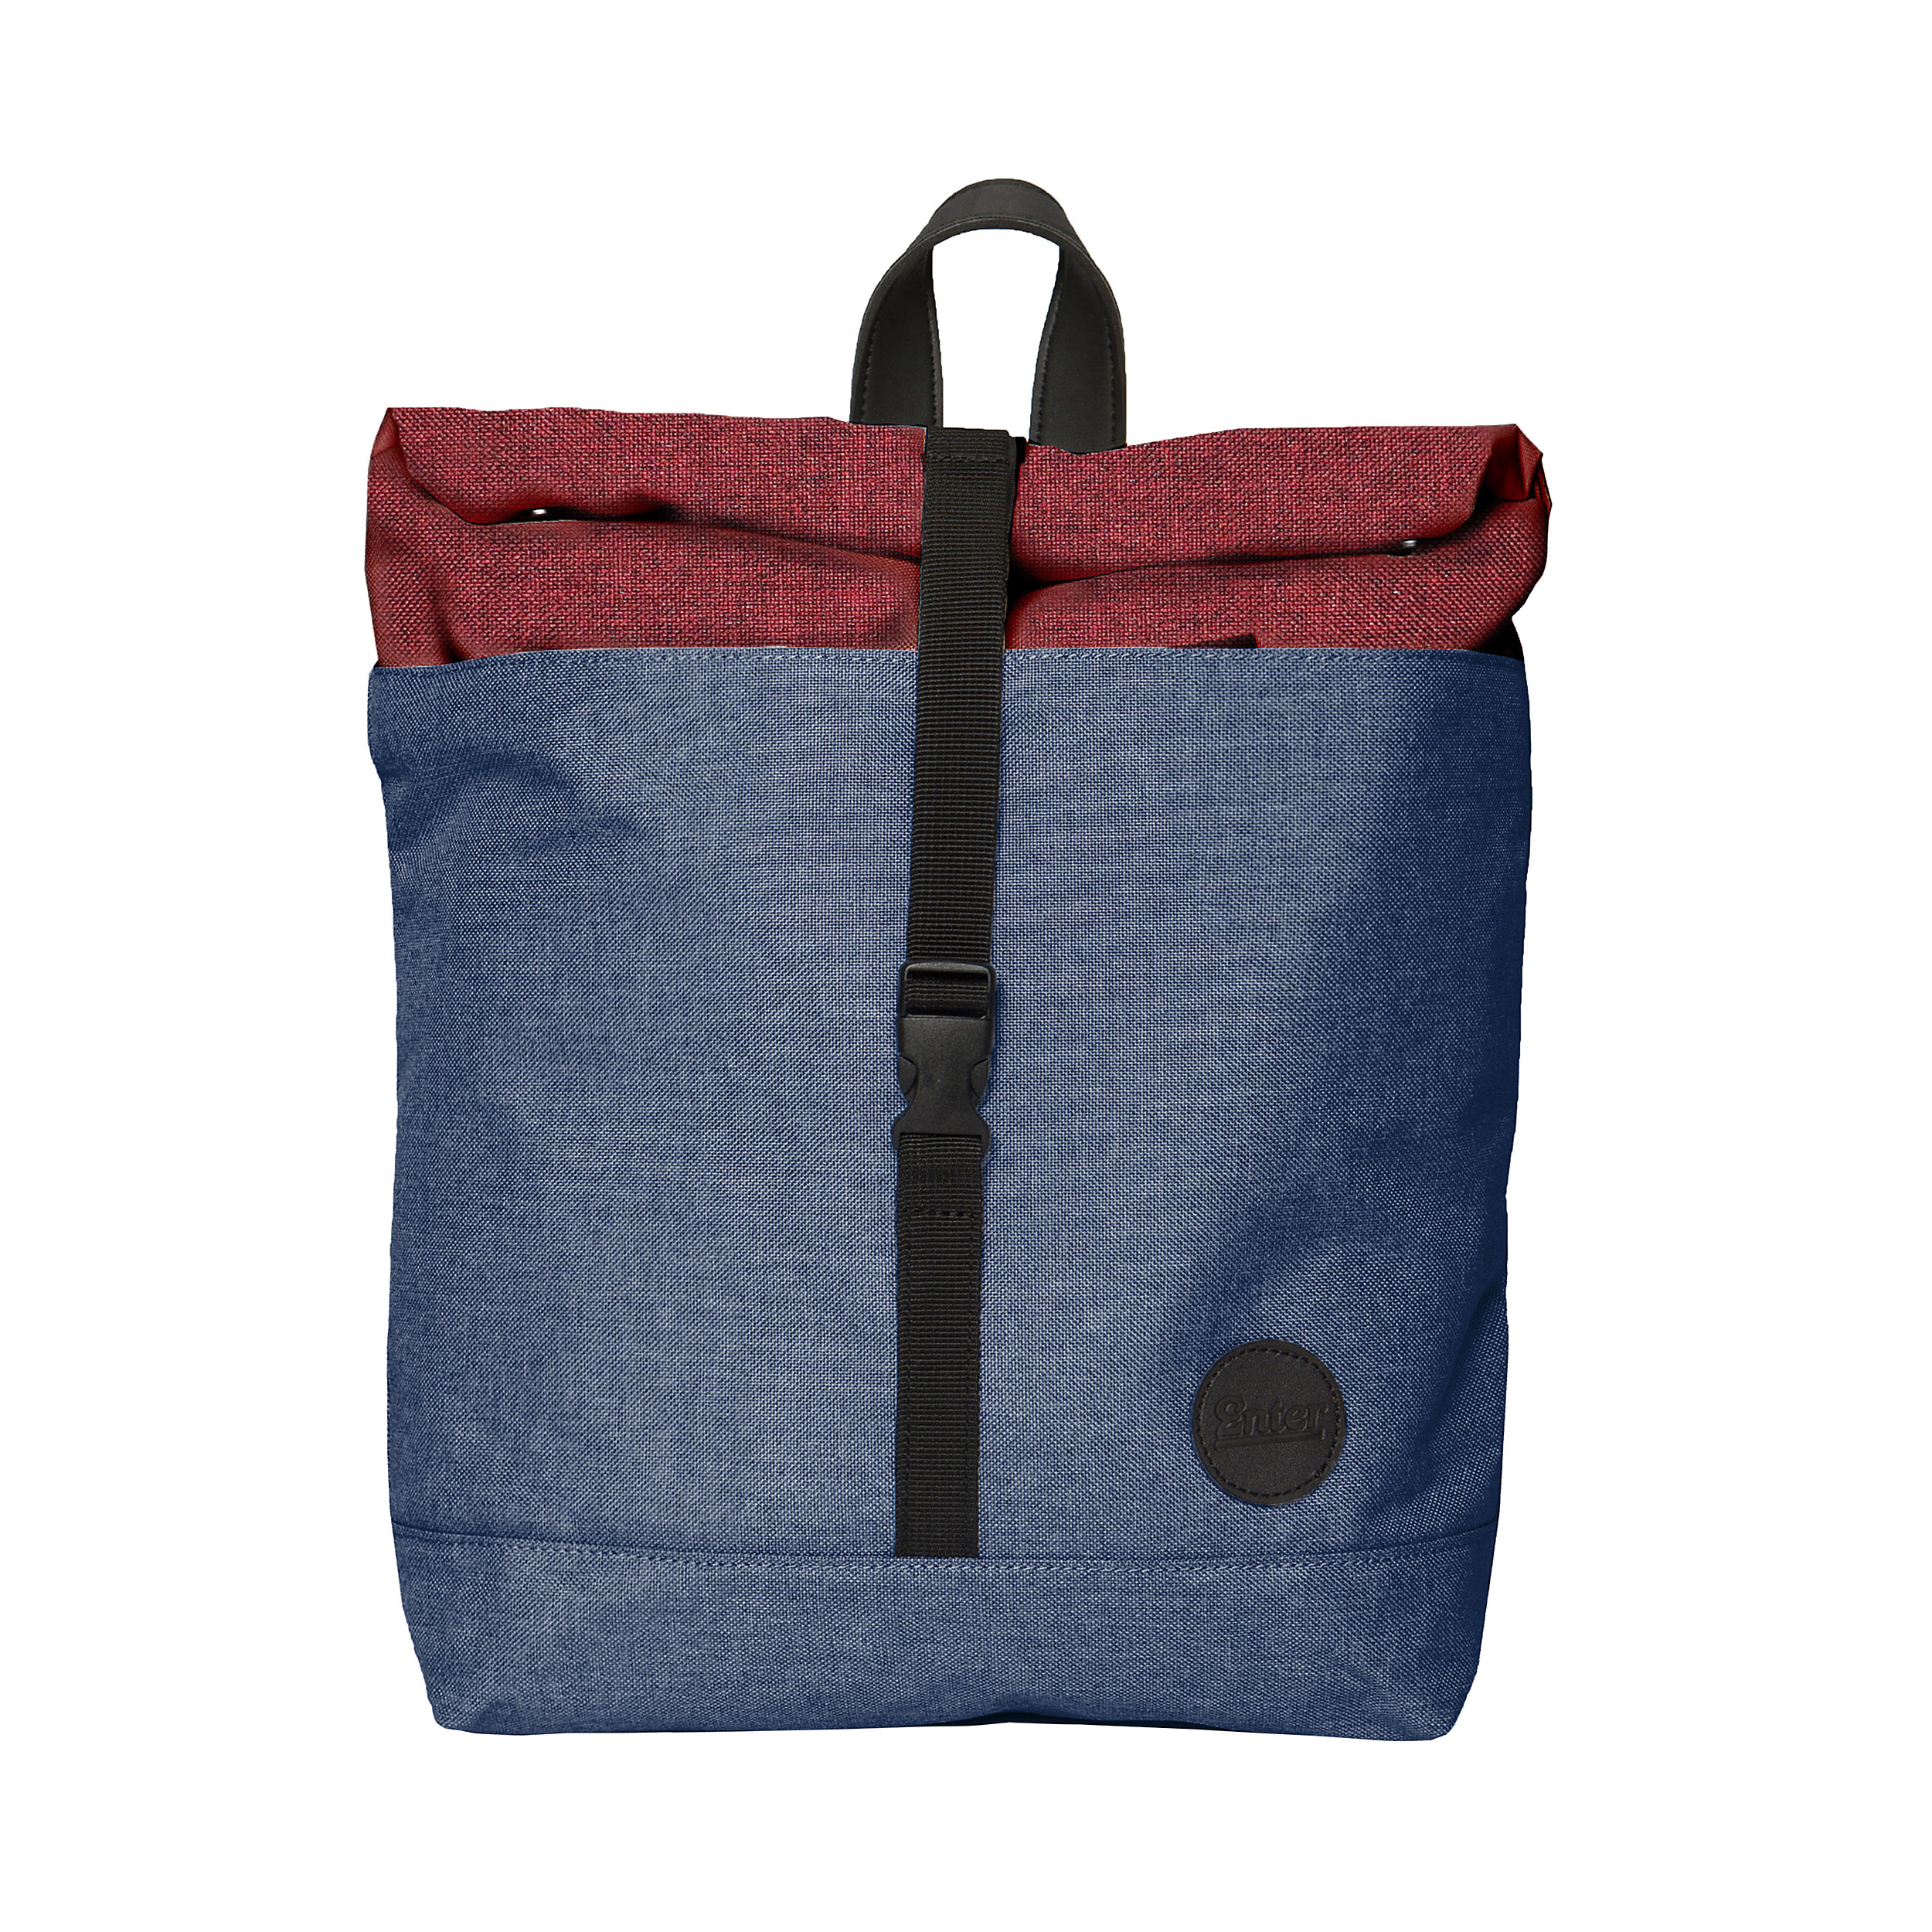 Rucksack LS Roll Top Backpack Mini Lifestyle Collection 9 Liter